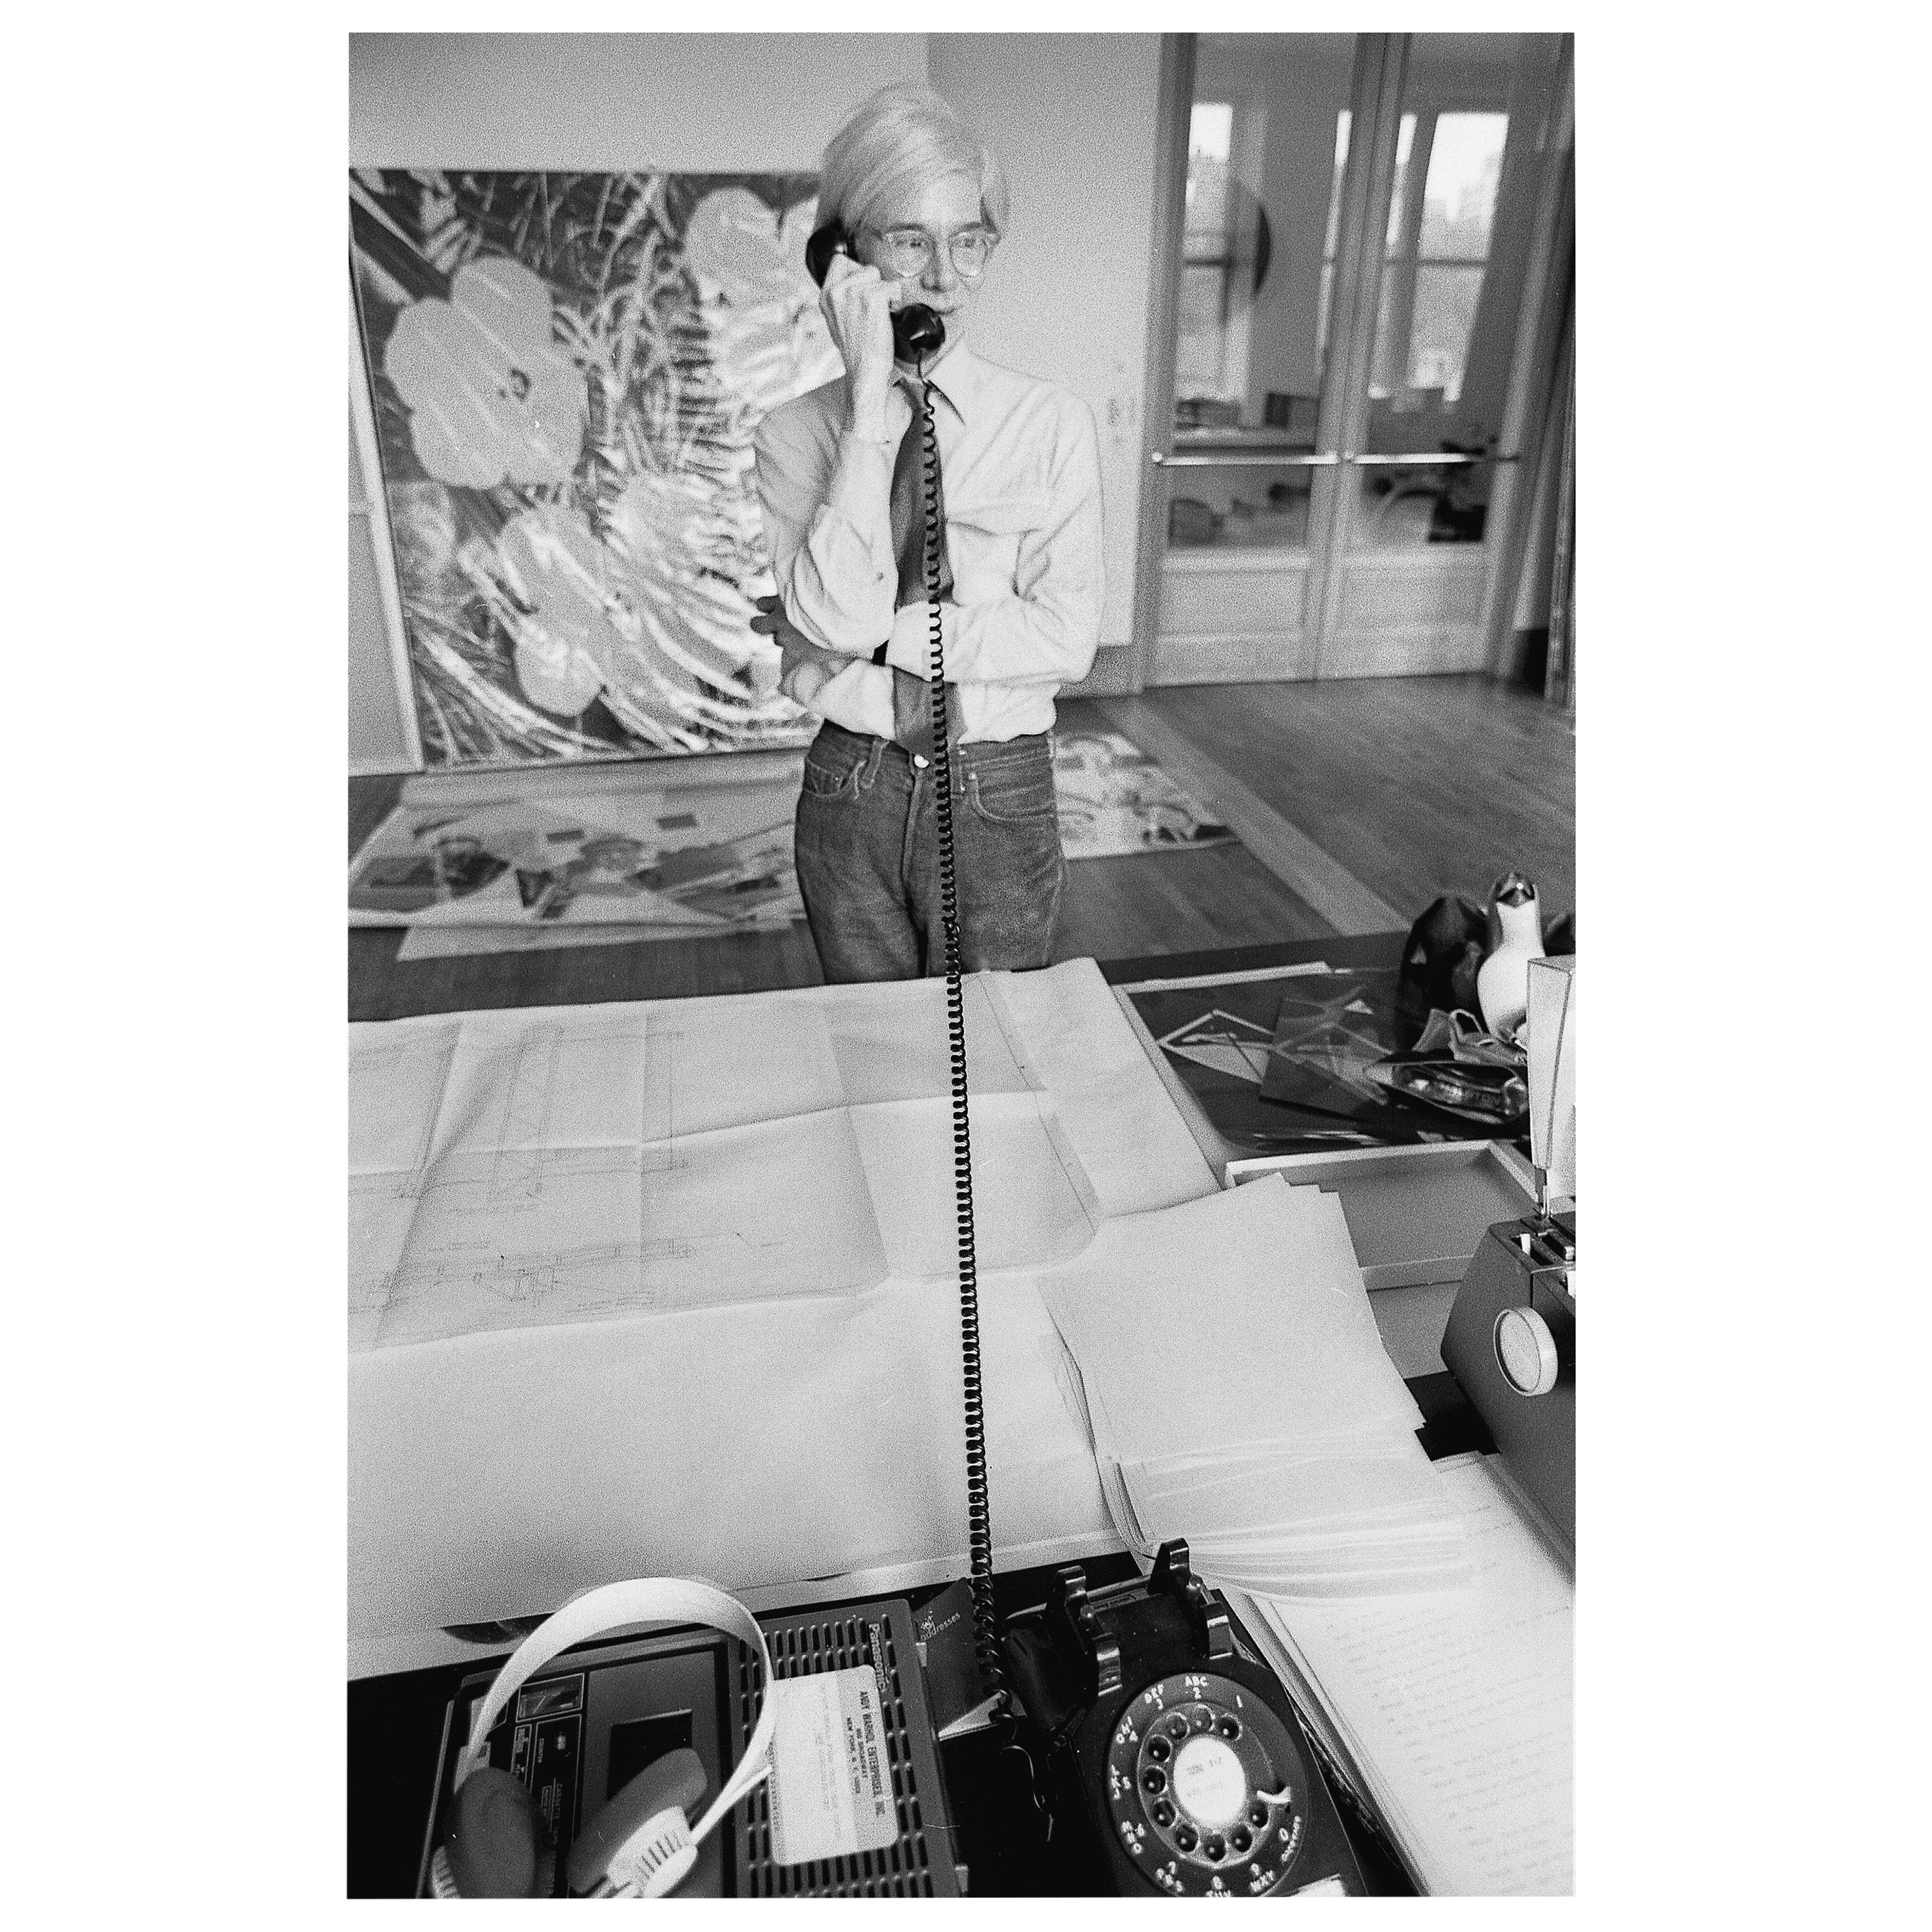 """Robert Levin, """"Andy Warhol on the Phone at Factory, NYC, 1981"""" Print, USA, 2015"""